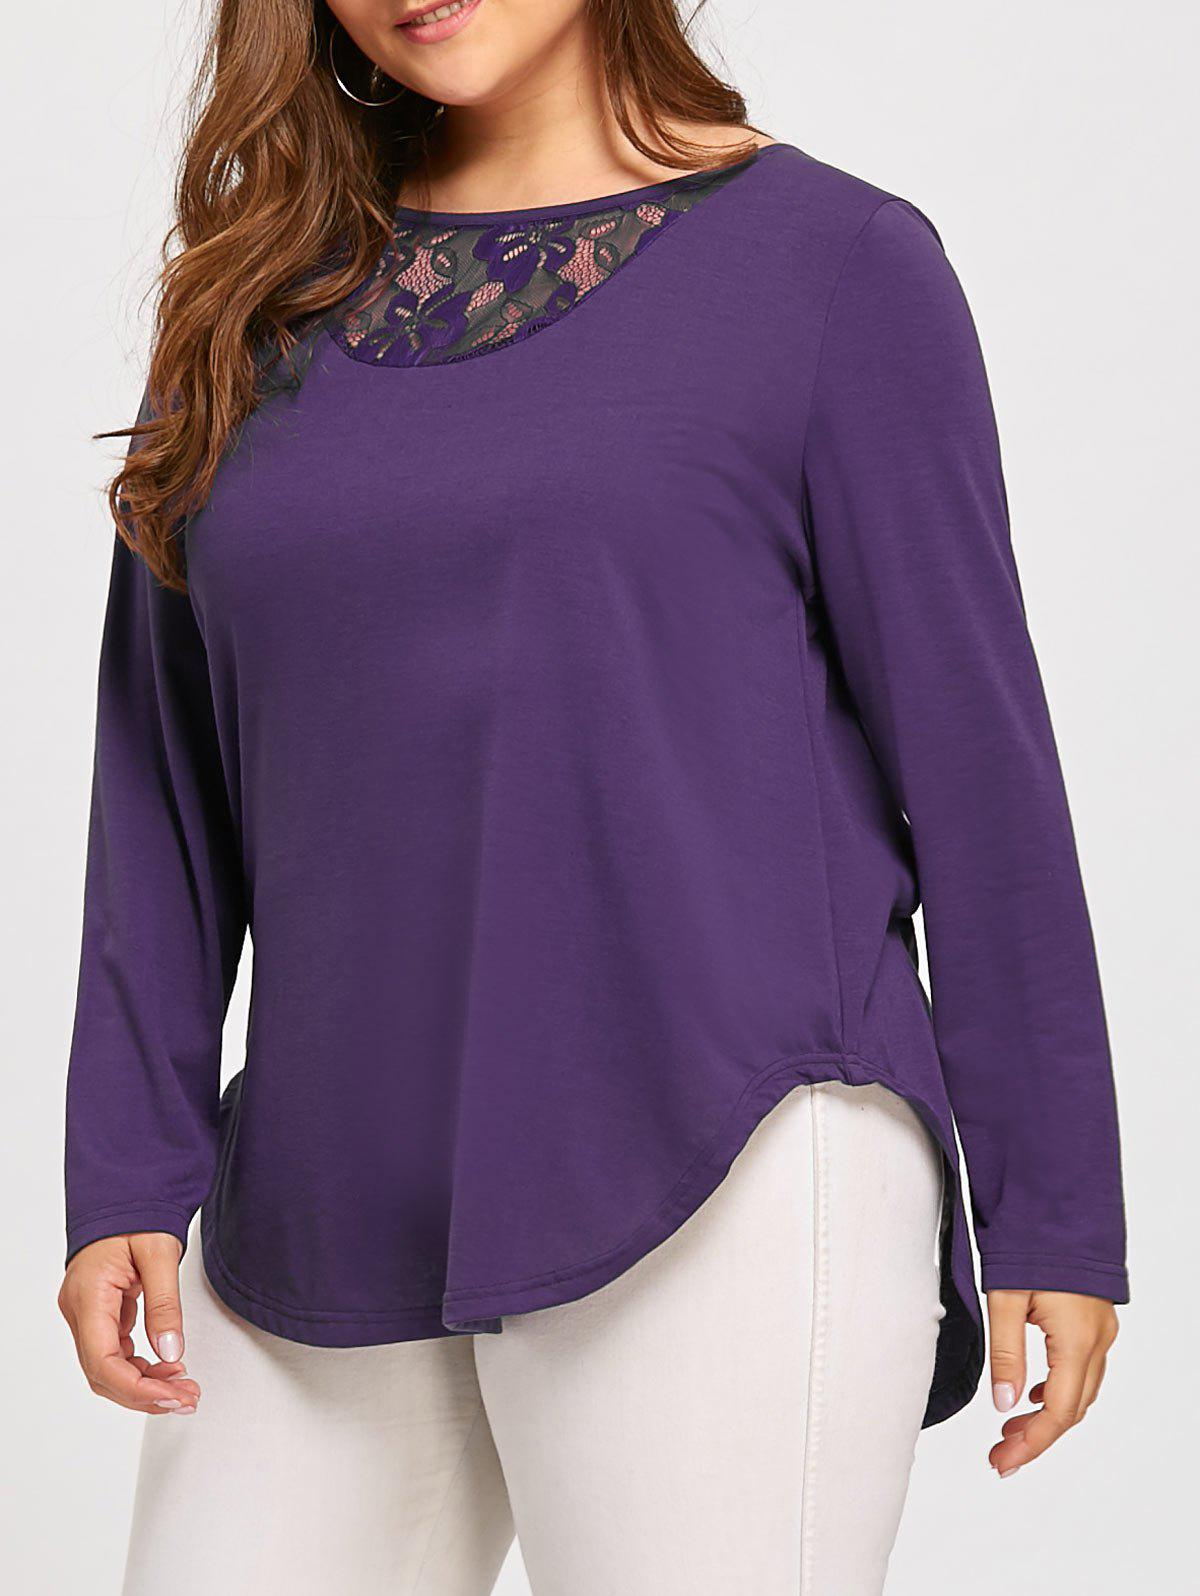 Plus Size Button Lace Insert Long Sleeve T-shirtWOMEN<br><br>Size: 4XL; Color: PURPLE; Material: Cotton Blends,Polyester; Shirt Length: Long; Sleeve Length: Full; Collar: Scoop Neck; Style: Fashion; Season: Fall,Winter; Embellishment: Button,Hollow Out,Lace; Pattern Type: Solid; Weight: 0.3100kg; Package Contents: 1 x Tee;